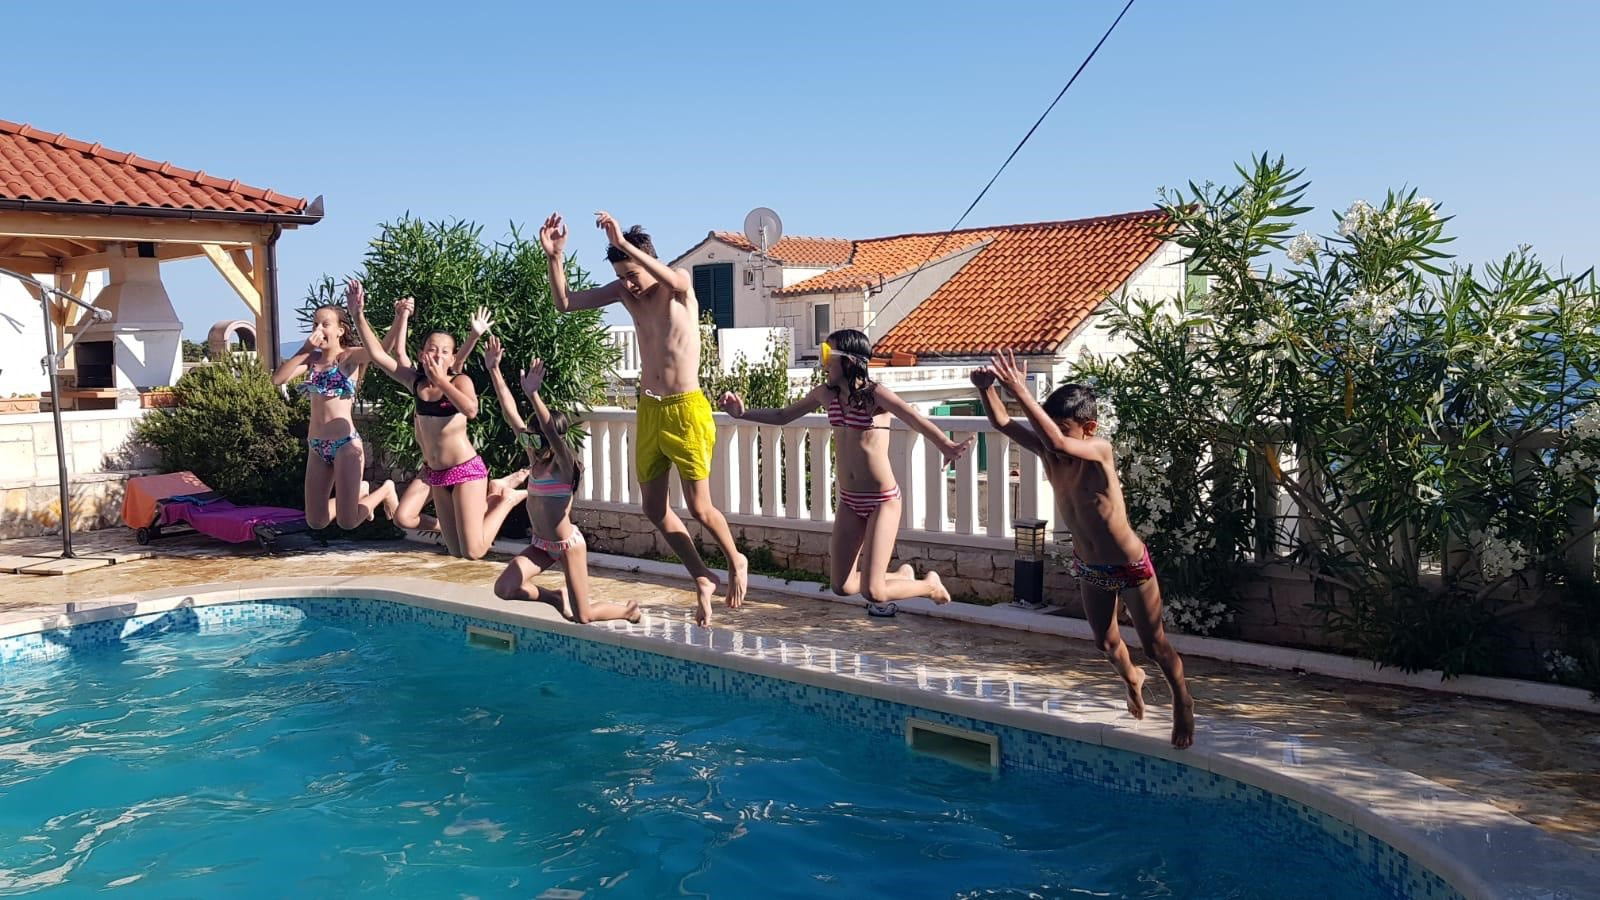 Children jumping in the swimming pool in Villa Mir Vami in Sumartin.